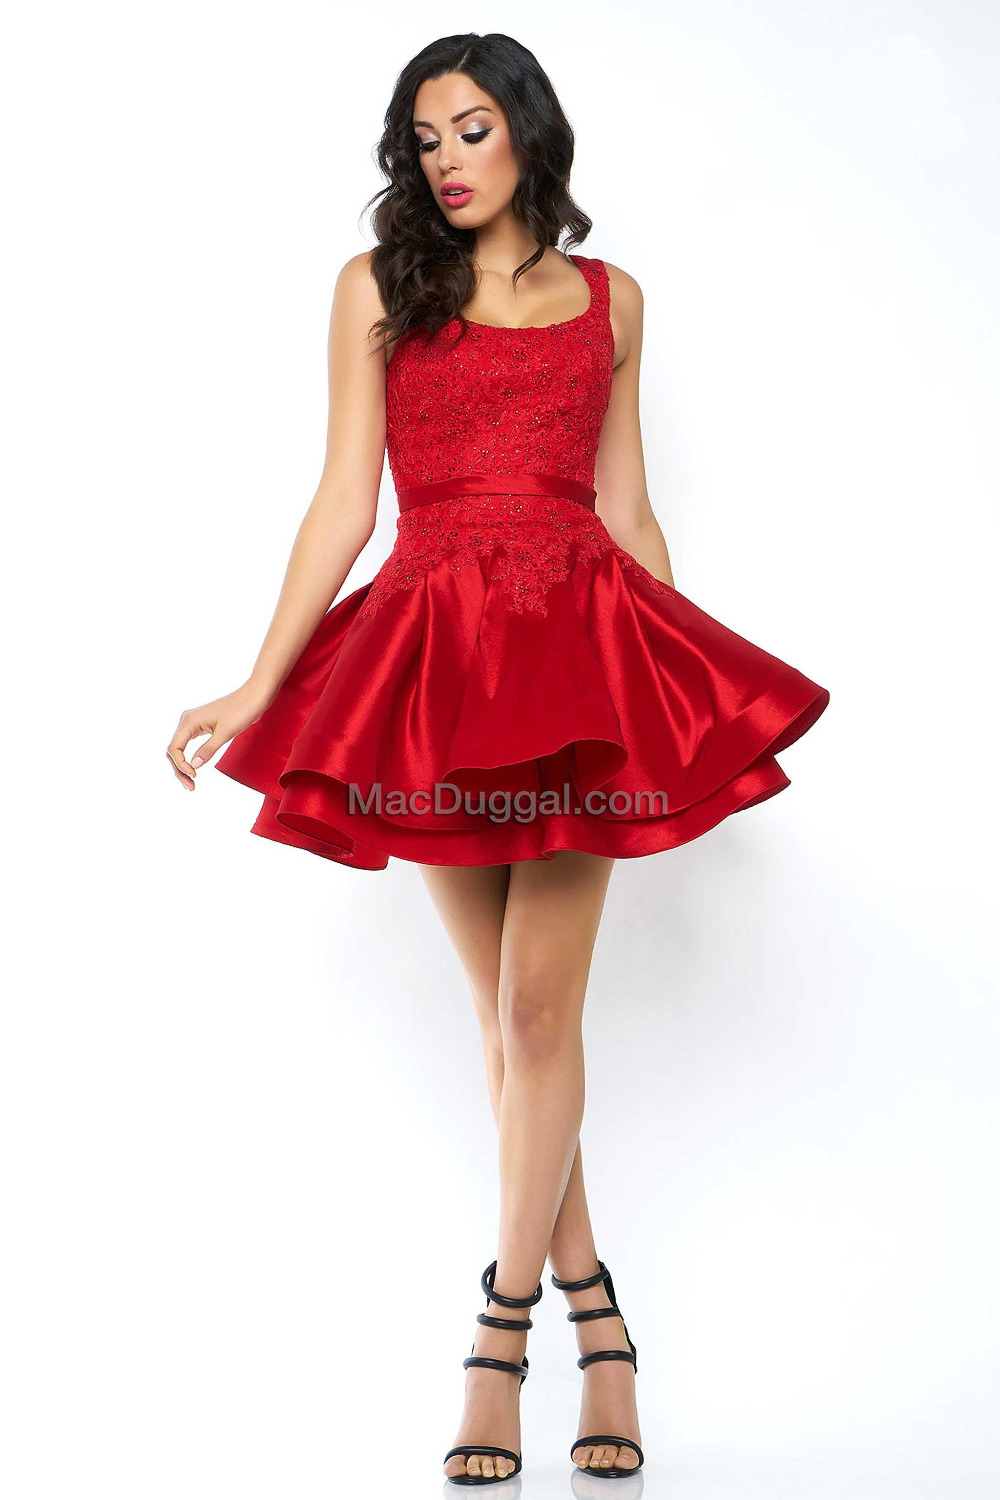 Pristine Short Red Cocktail Party Dresses Straps Puffy Mini Prom Dressestiered Skirt Lace Applique Beadings Homecoming Prom Dressesfrom Short Red Cocktail Party Dresses Straps Puffy Mini Prom wedding dress Short Red Dress